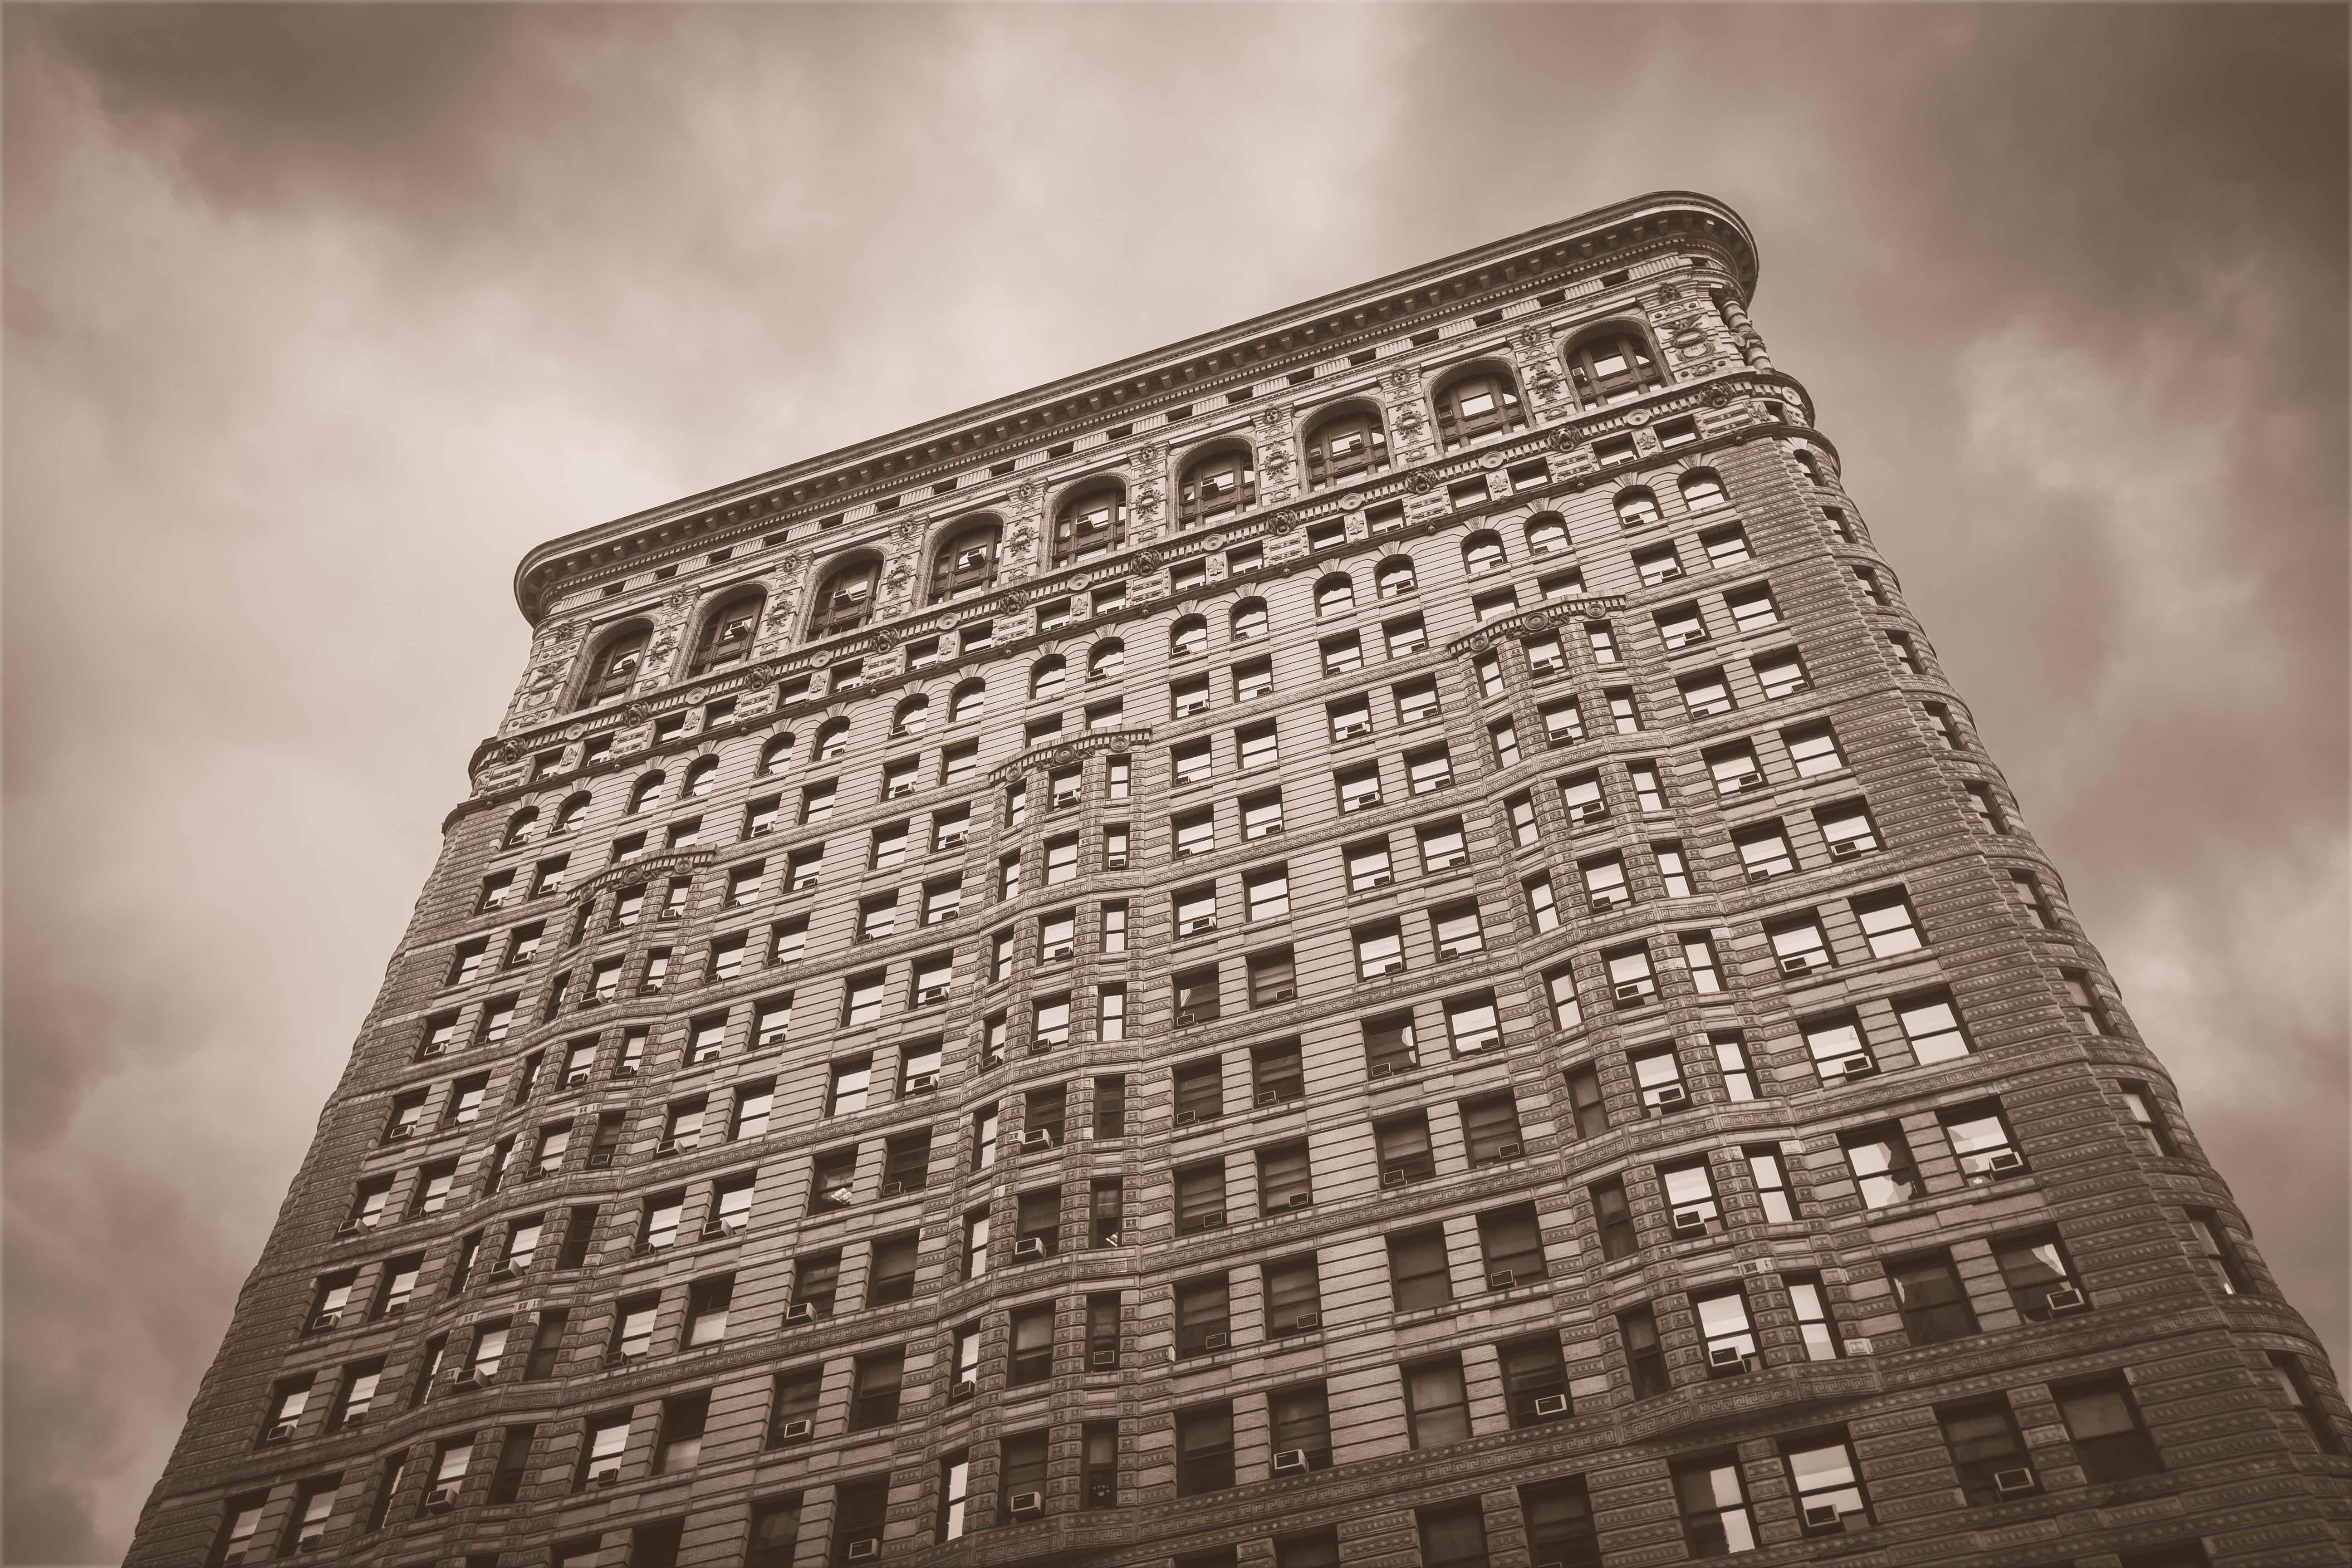 low angle sepia photography of a high-rise building